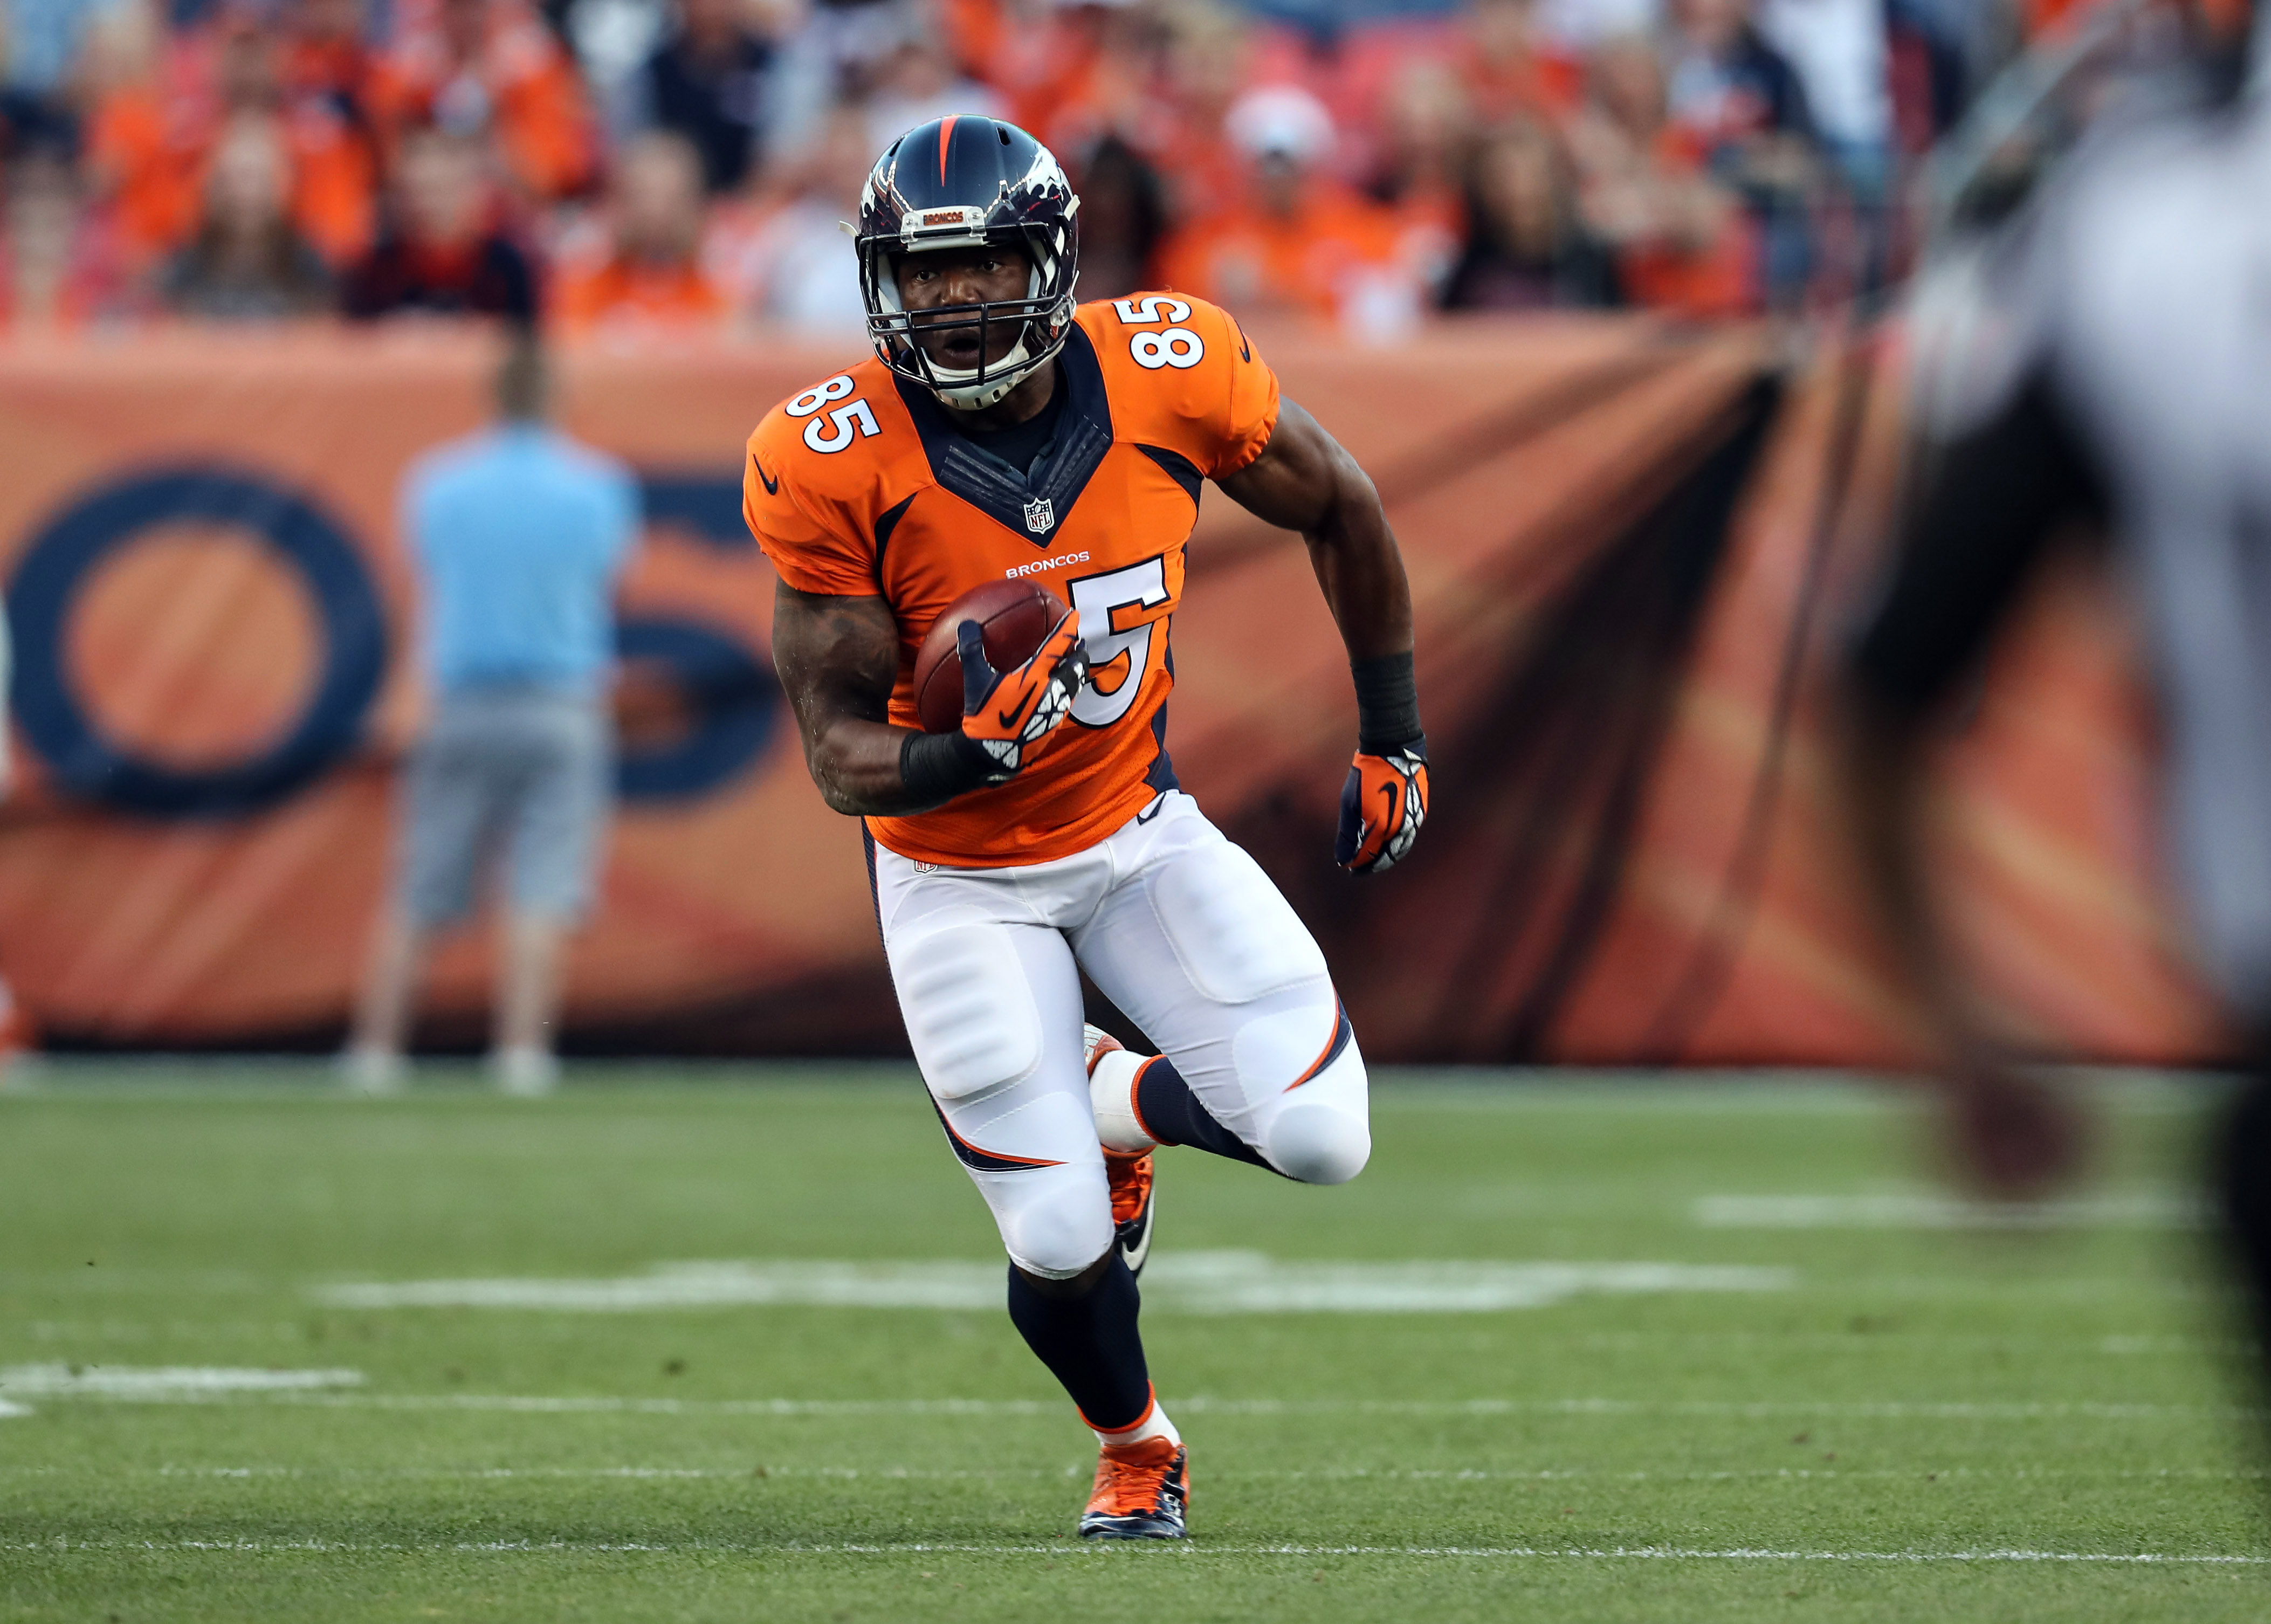 Fantasy football waiver wire: 5 tight ends to look at for Week 2